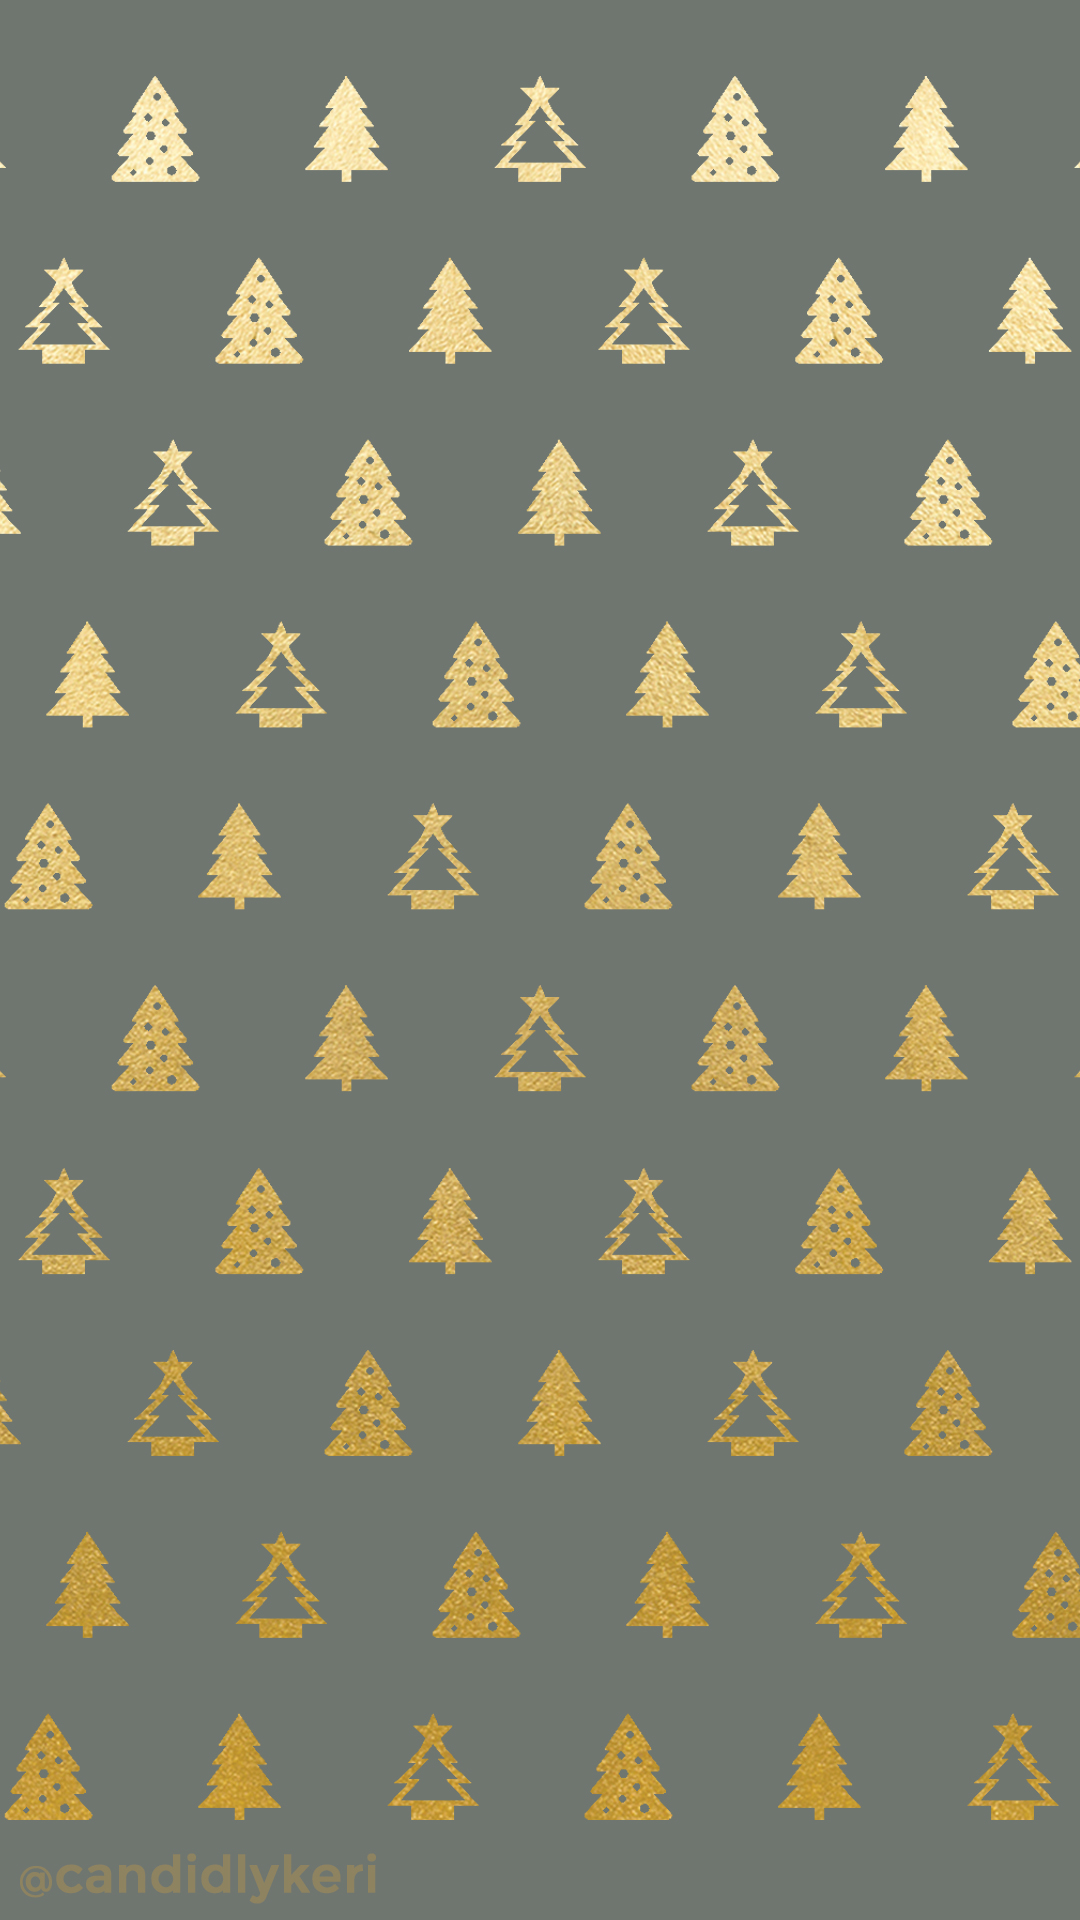 Christmas-tree-gold-foil-green-background-you-can-download-for-free-on-the-blog-For-any-d-wallpaper-wpc9003547